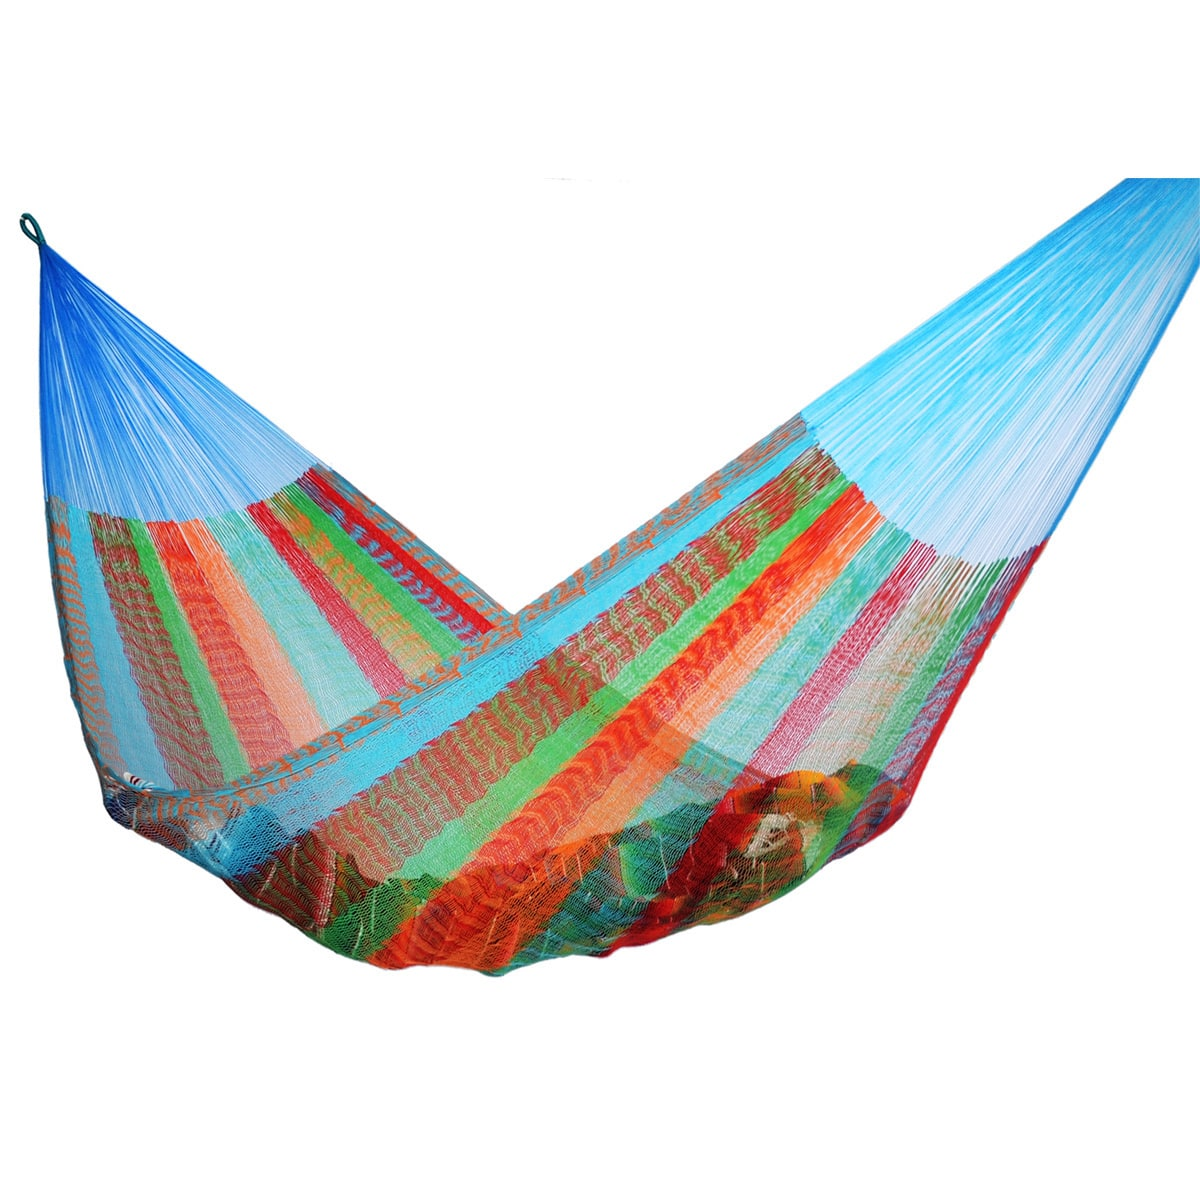 Direct Selling Home Decor Hammocks Amp Porch Swings For Less Overstock